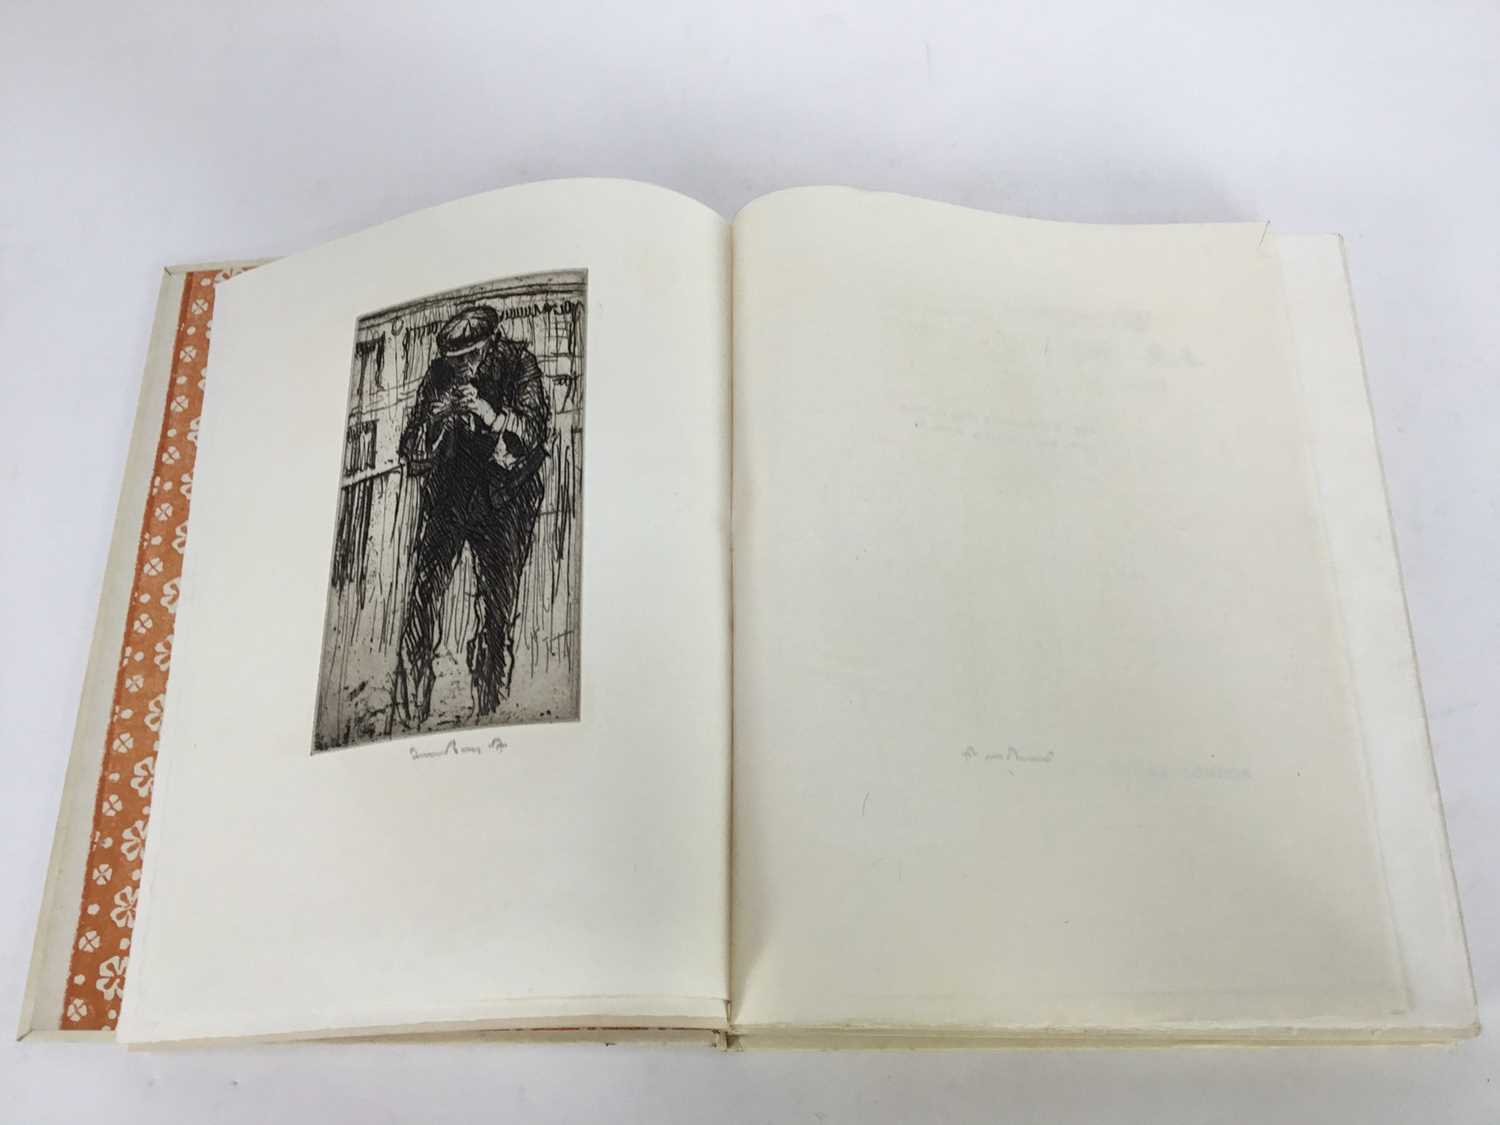 Book - The Etchings of Frank Brangwyn, R.A. A Catalogue Raisonne By W. Gaunt, limited edition 10/125 - Image 4 of 8